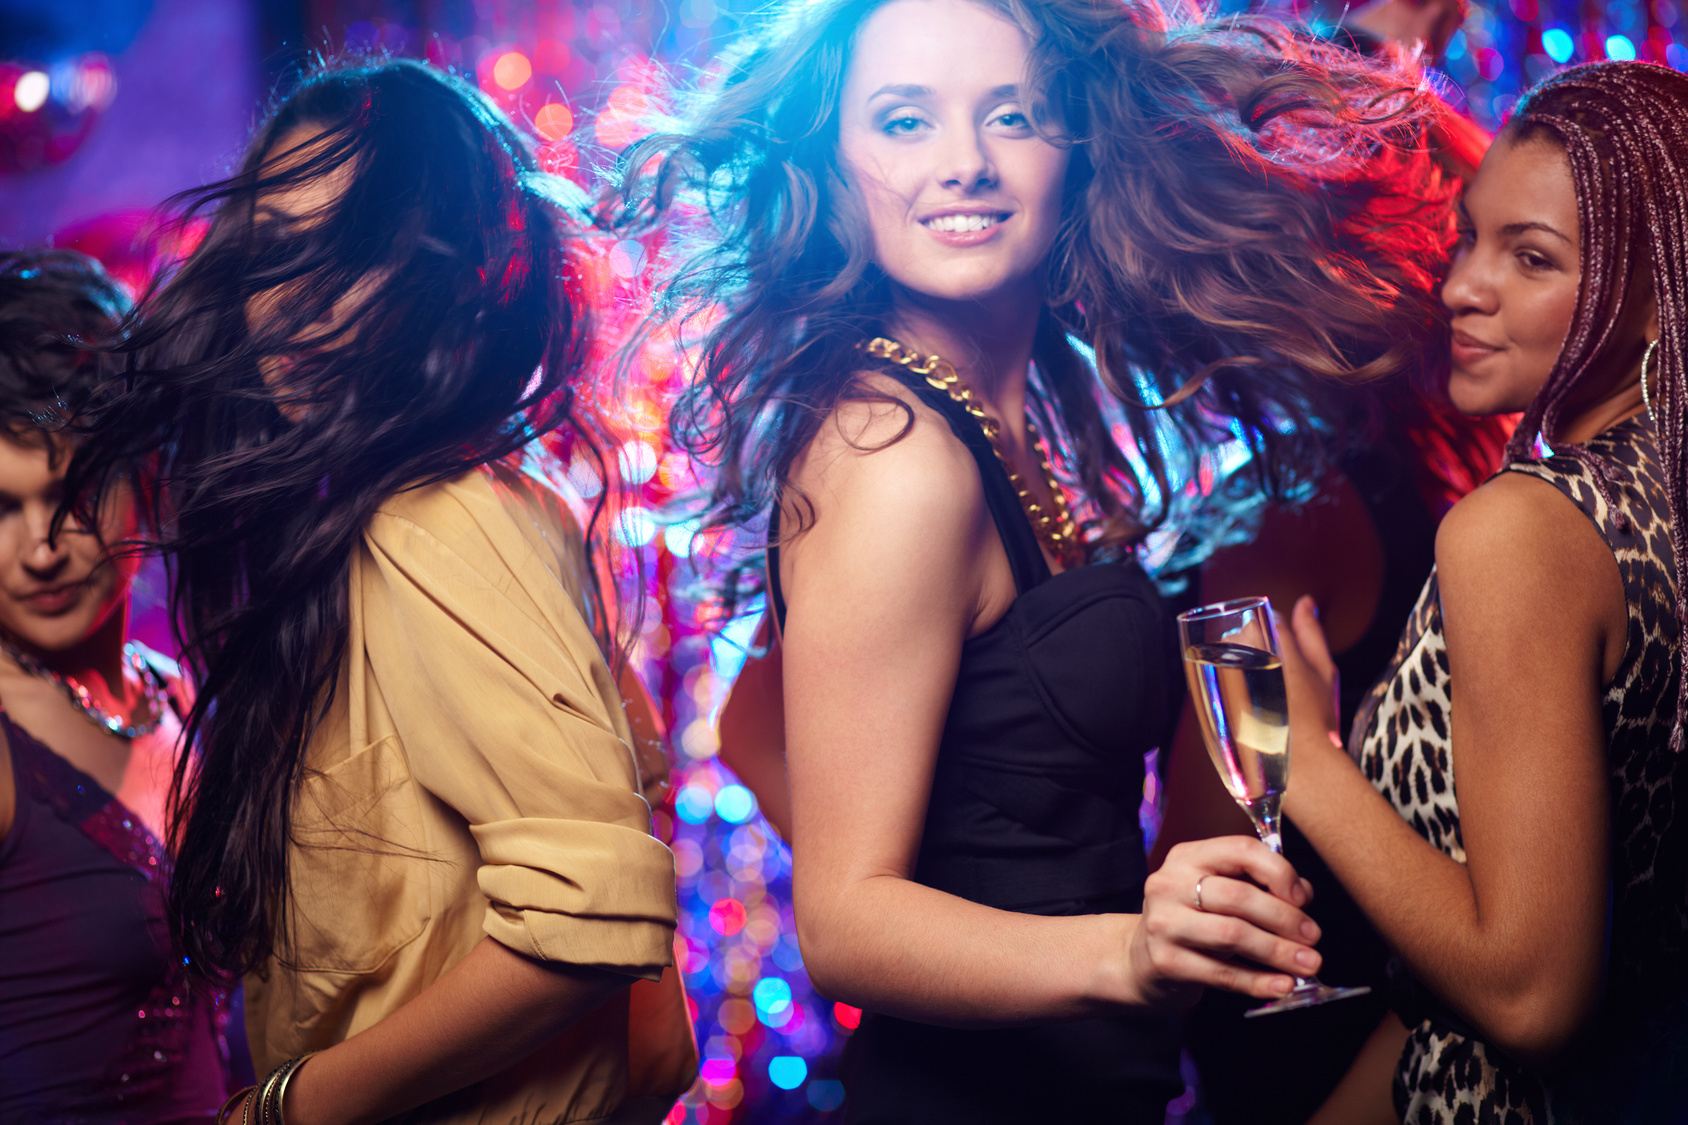 Young woman looking at camera while dancing at nightclub among her friends